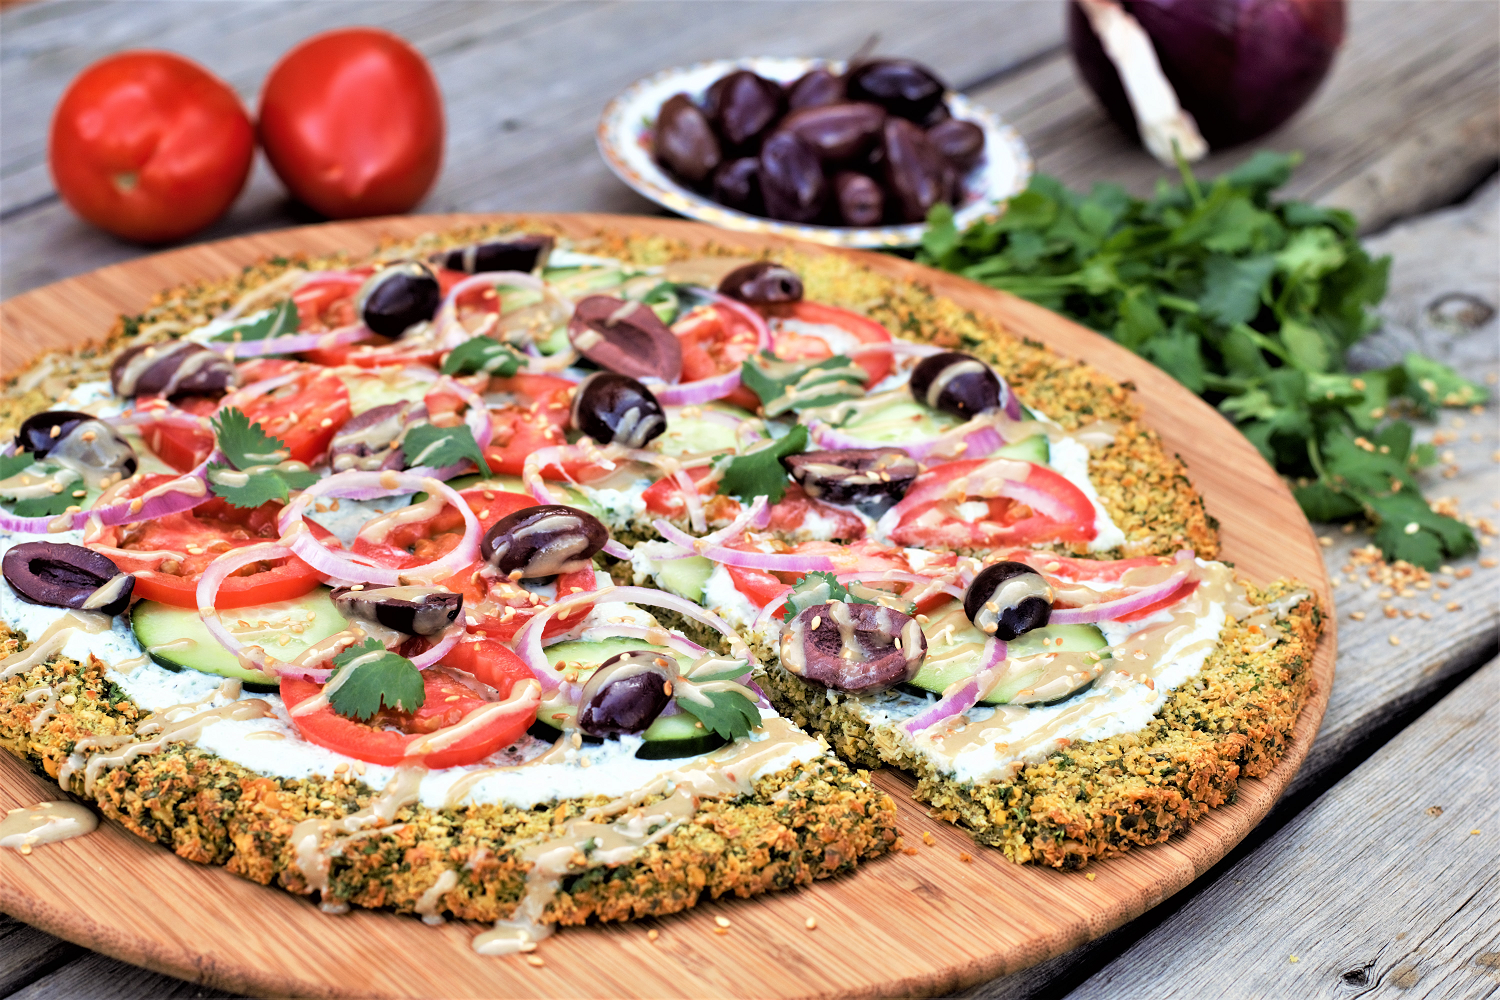 Everyone's favorite Middle Eastern sandwich on a pizza! Crunchy, bright, fresh veggies over creamy tzatziki on a crispy golden falafel crust is healthy eating at its very best: high protein & fiber, low carb, gluten free, vegetarian, zero added sugar, and downright delicious all around.